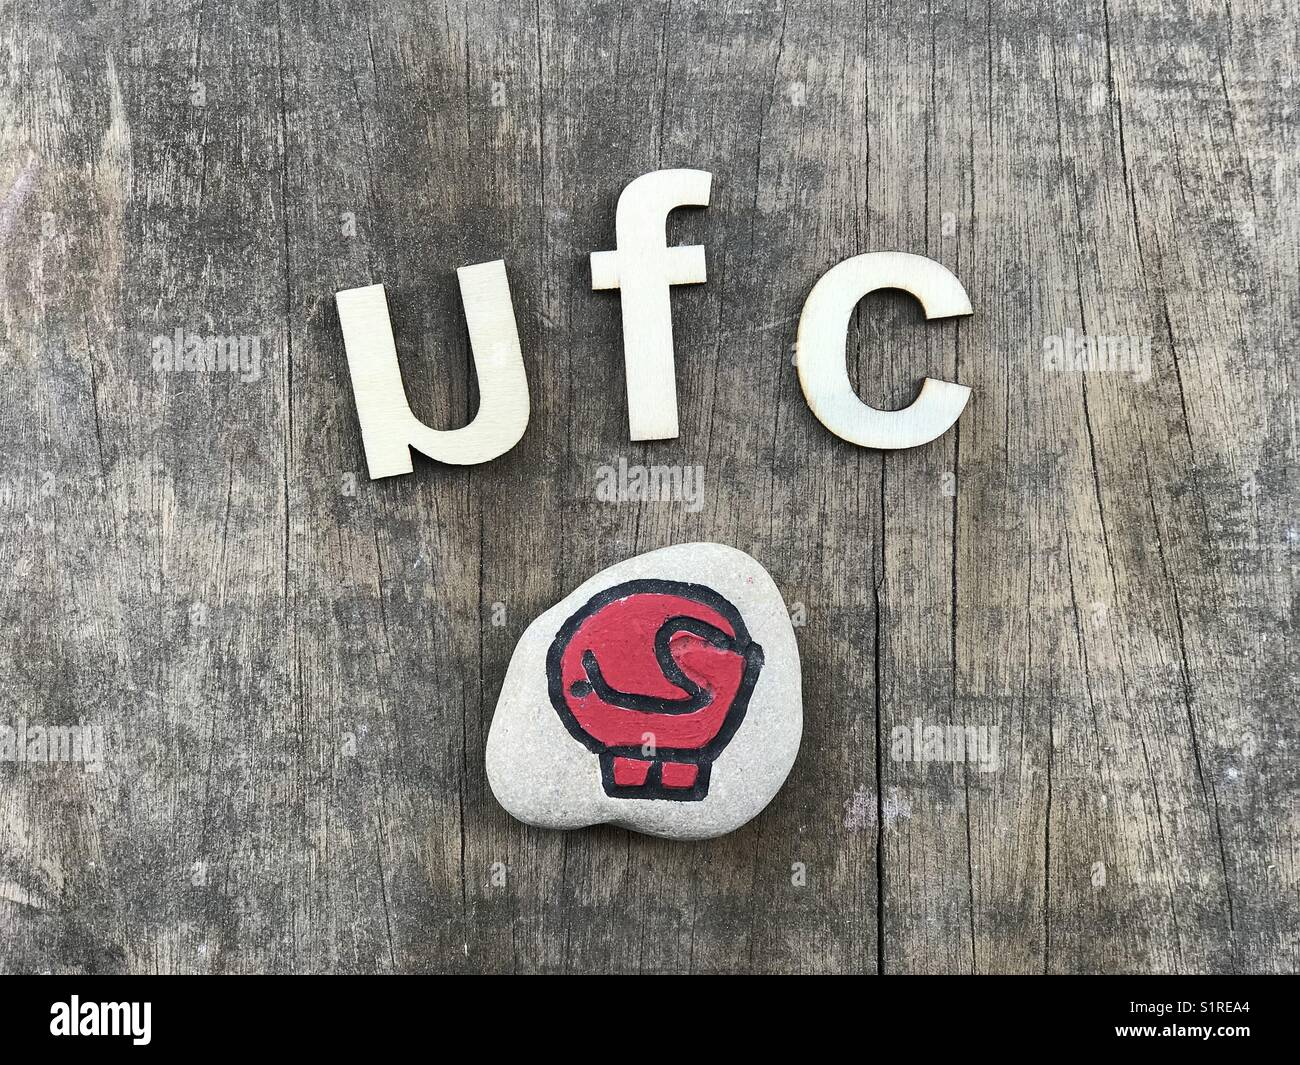 UFC, Ultimate Fighting Championship - Stock Image